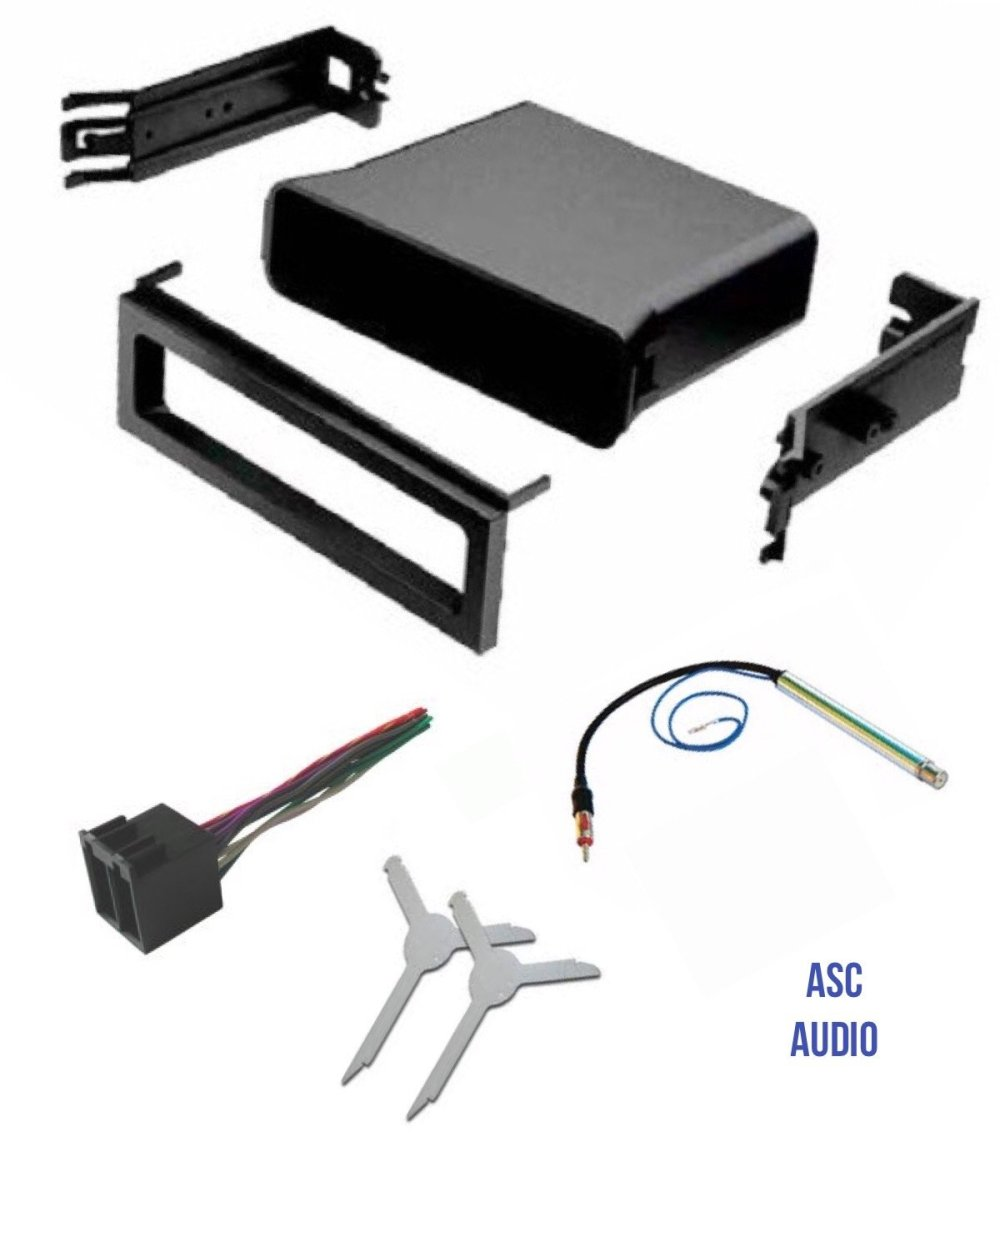 medium resolution of asc audio car stereo dash pocket kit wire harness antenna adapter and radio removal tool for installing a single din radio for vw volkswagen 1999 2000